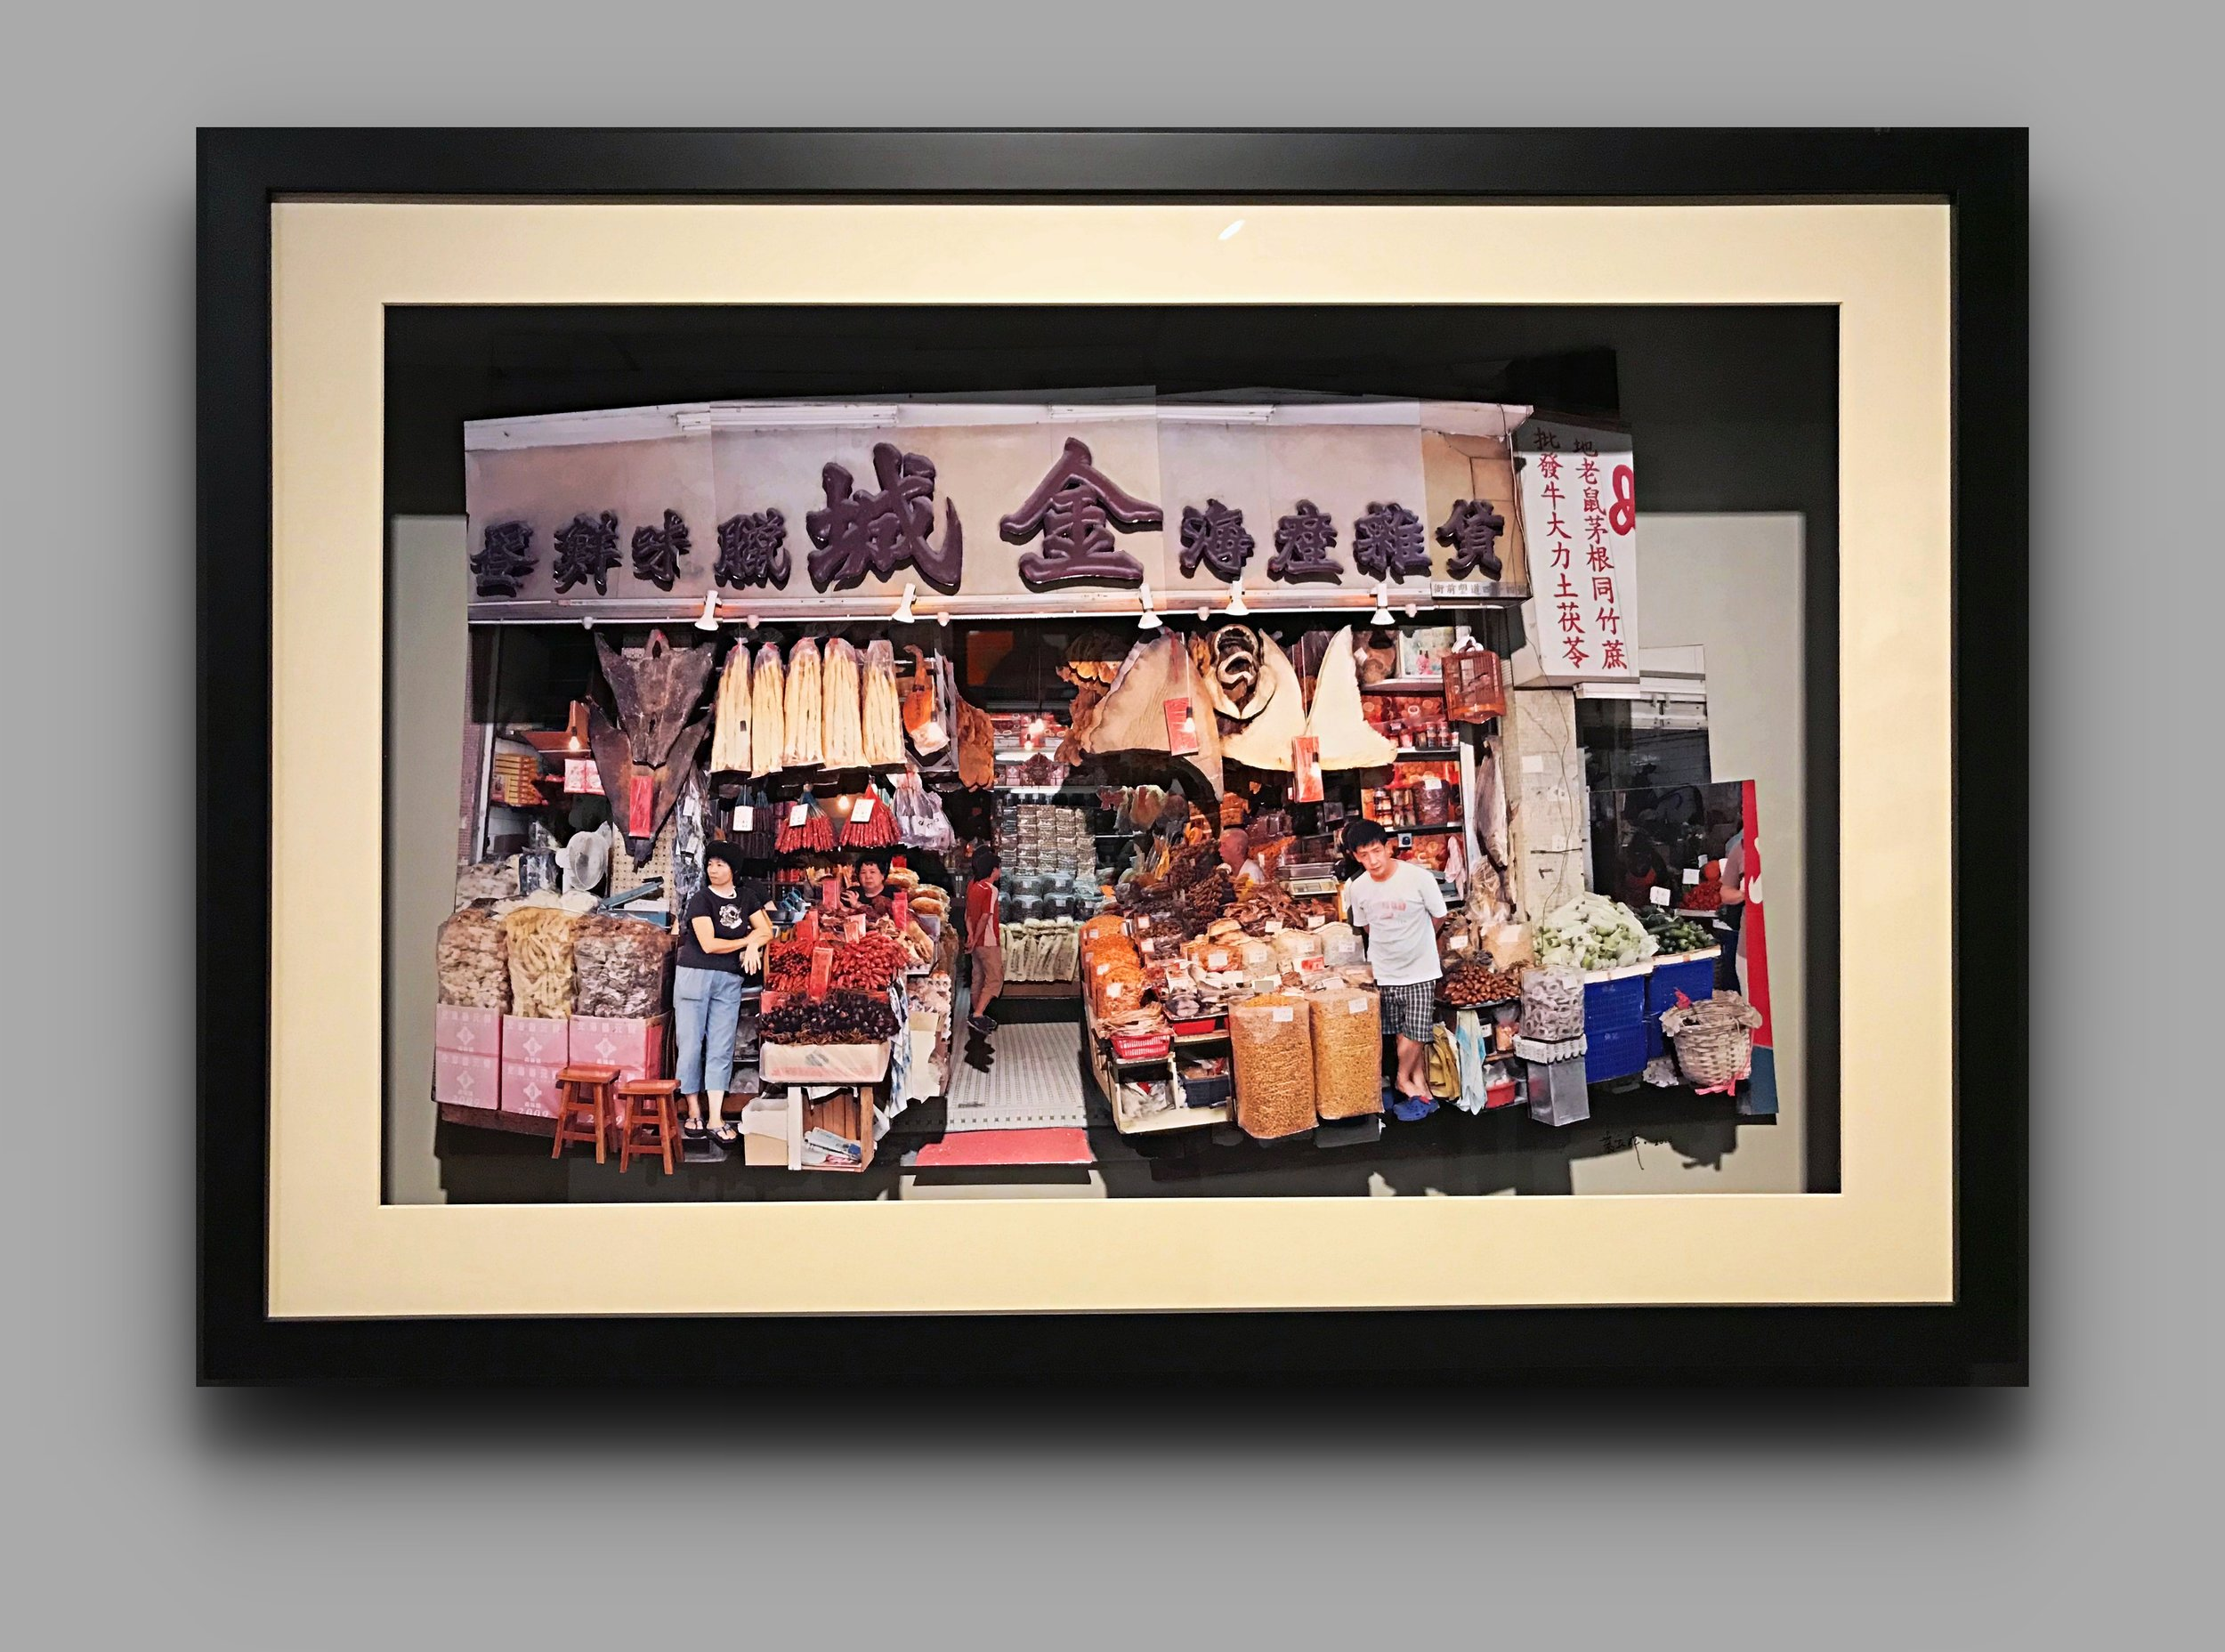 Alexis Ip - Kam Shing Dried Seafood framed with wall .jpg